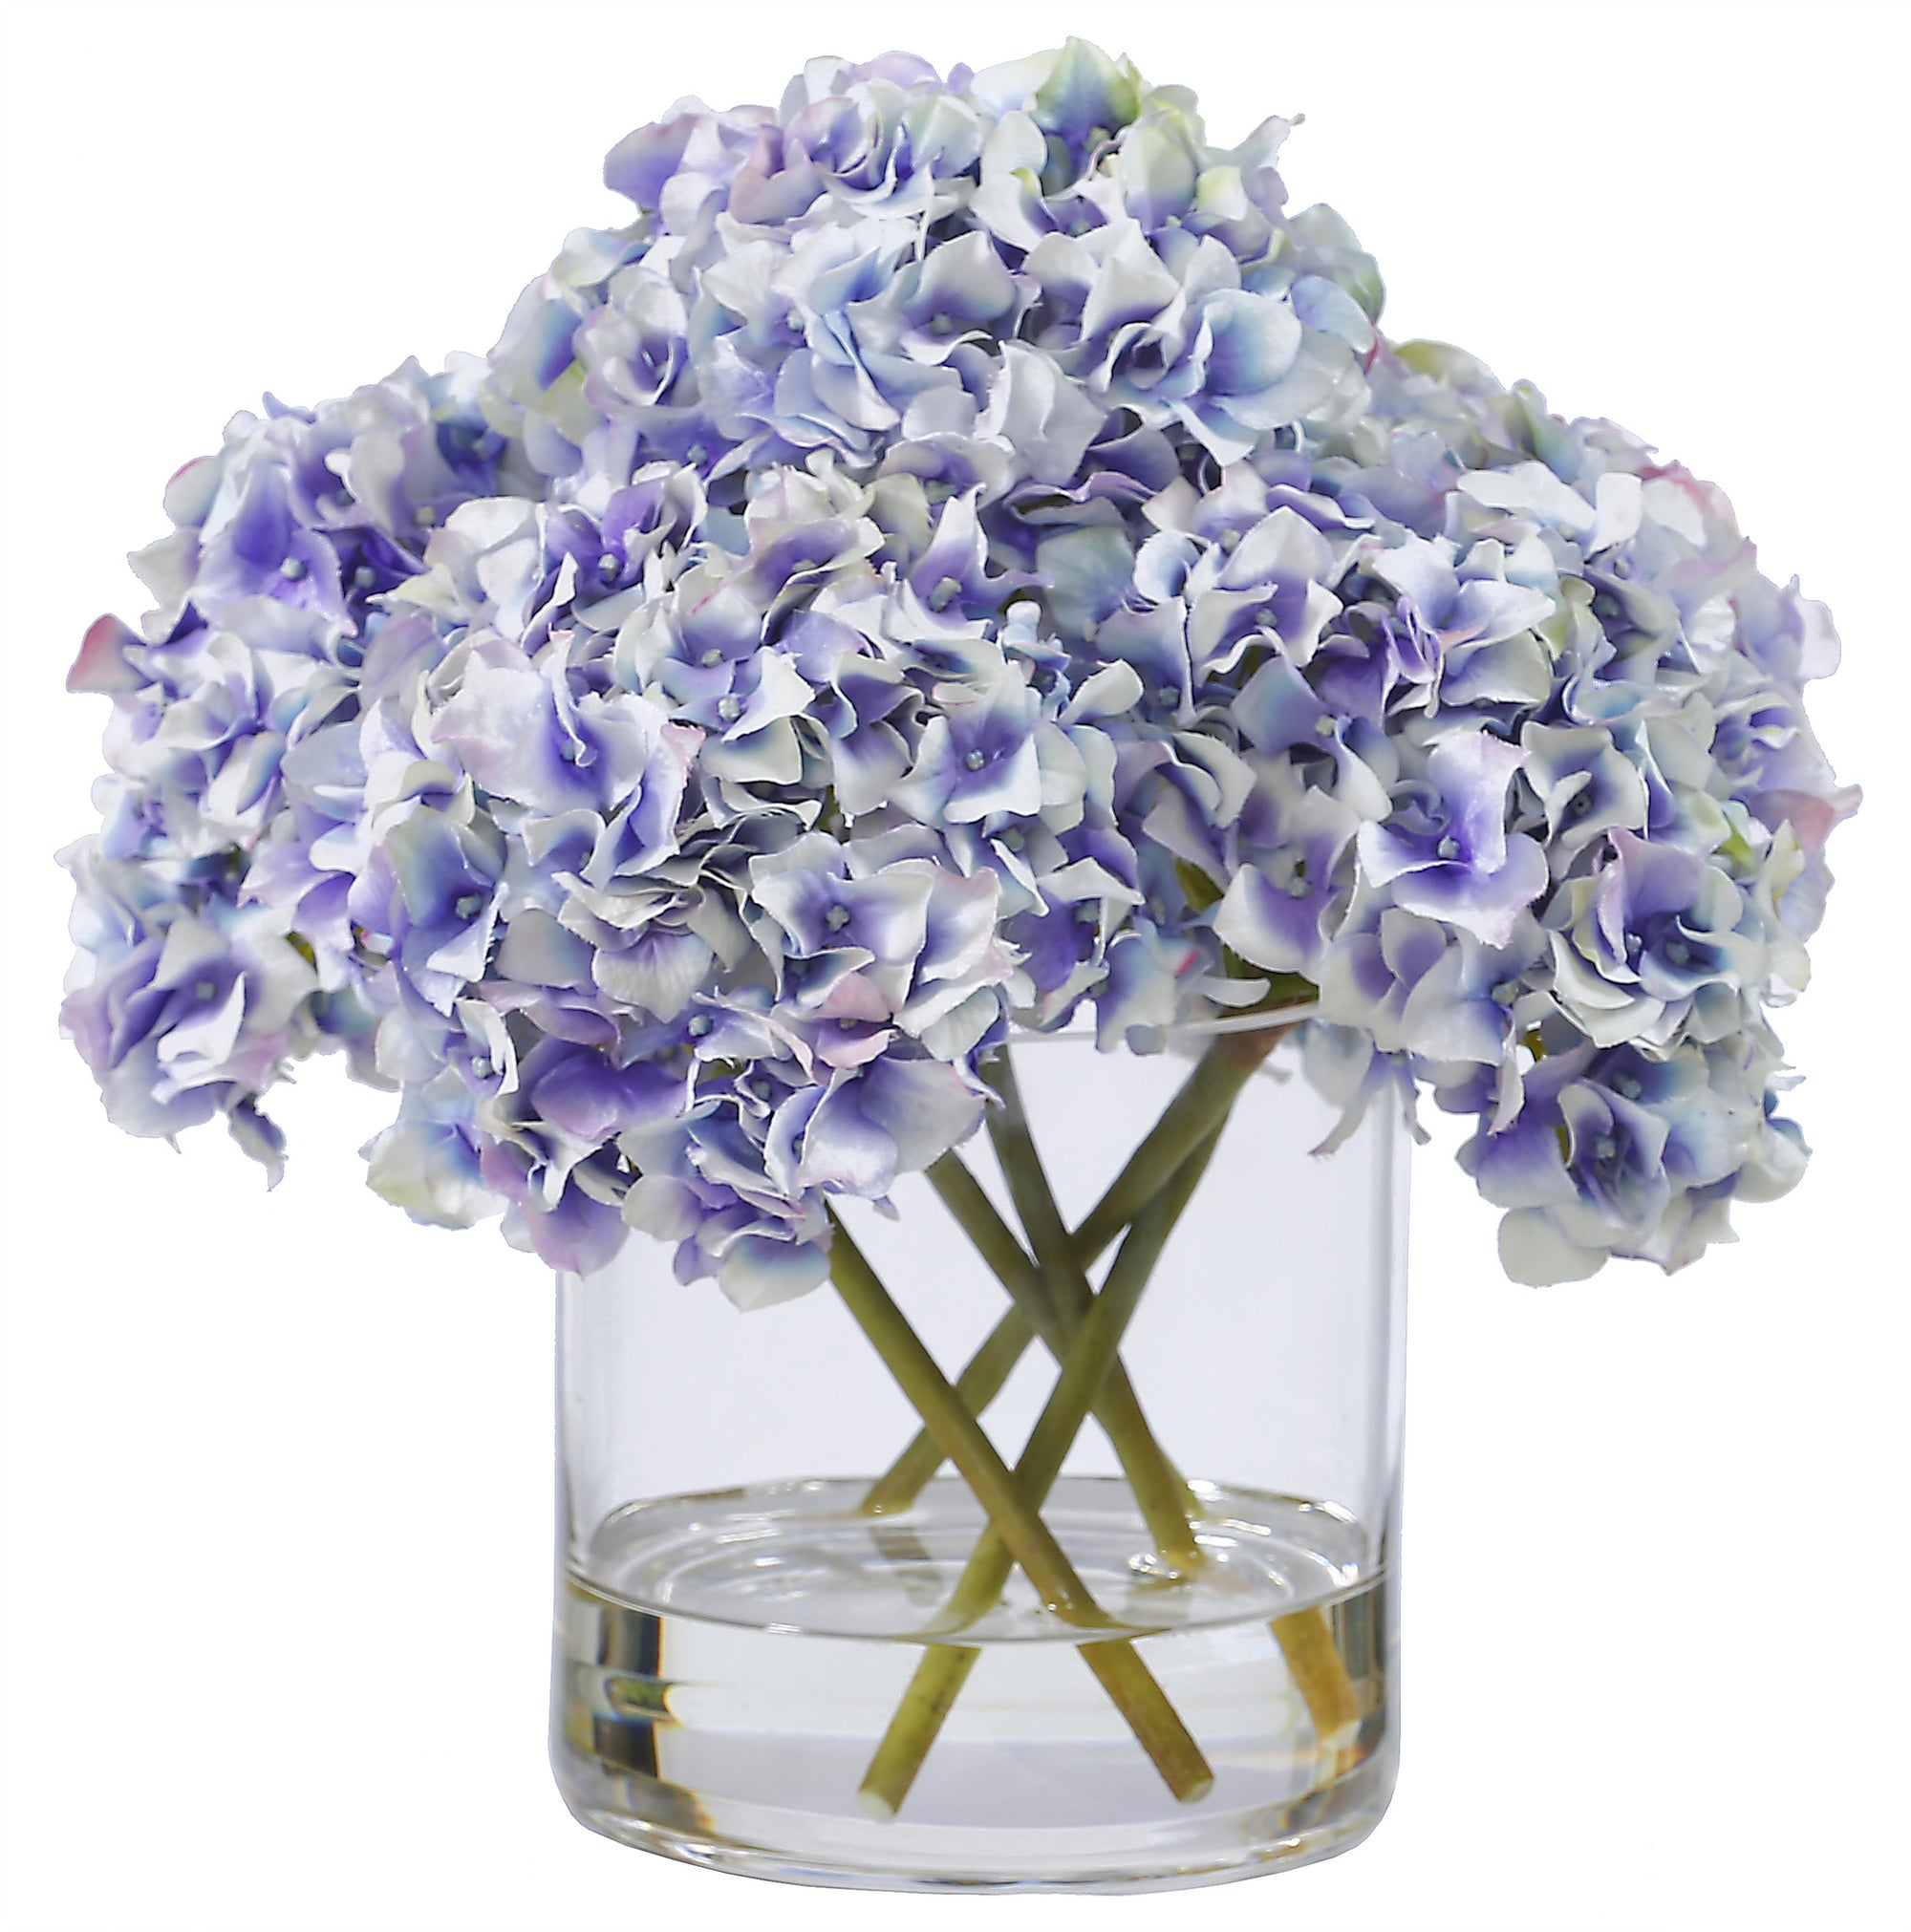 HYDRANGEAS IN GLASS 12'' (WHI007-WHBL) - Winward Home faux floral arrangements